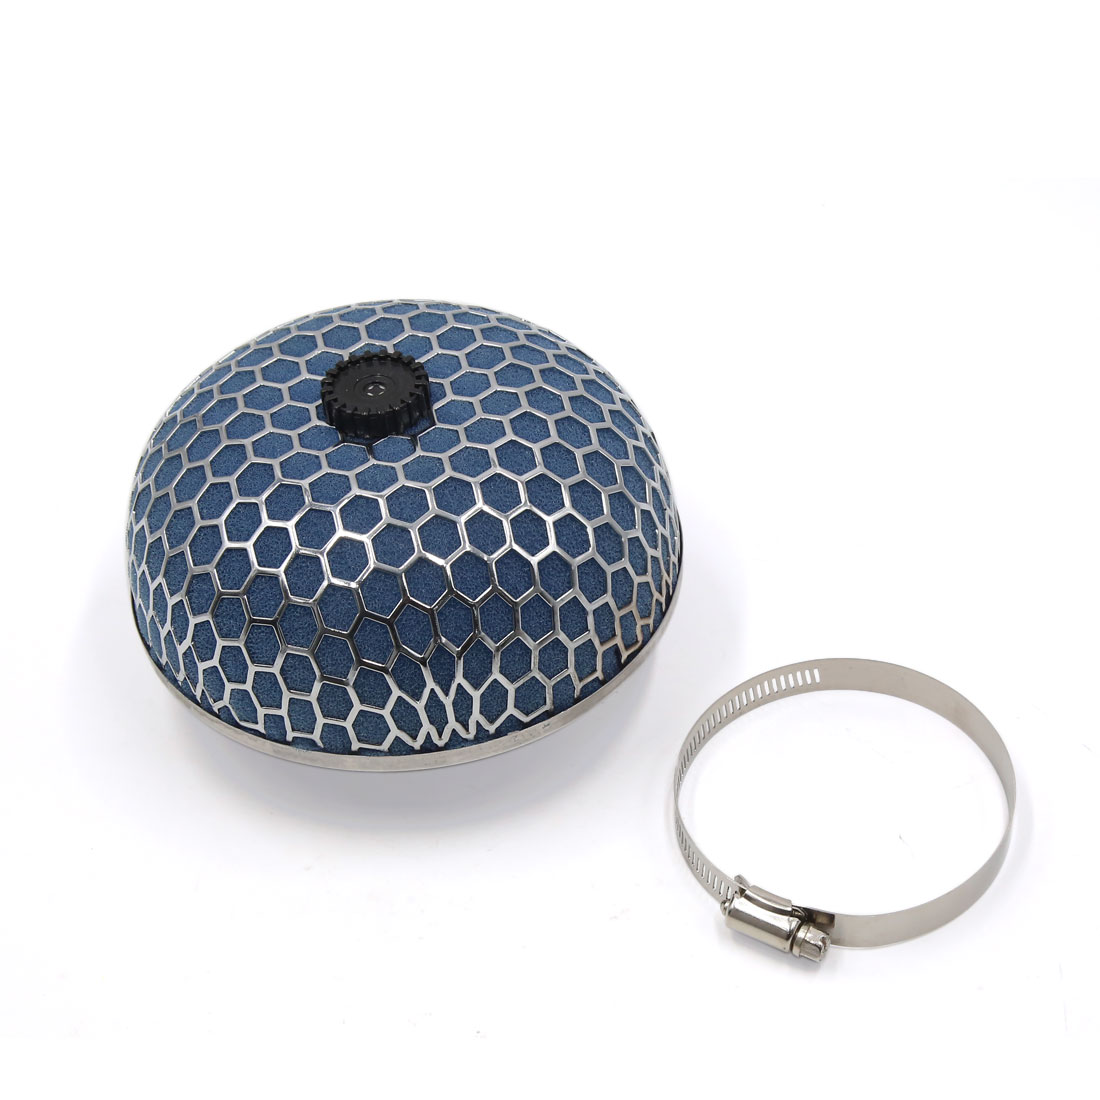 Blue 75mm Inlet Dia. Air Intake Filter Cleaner w Adjustable Clamp for Car Vehicle - image 3 of 3